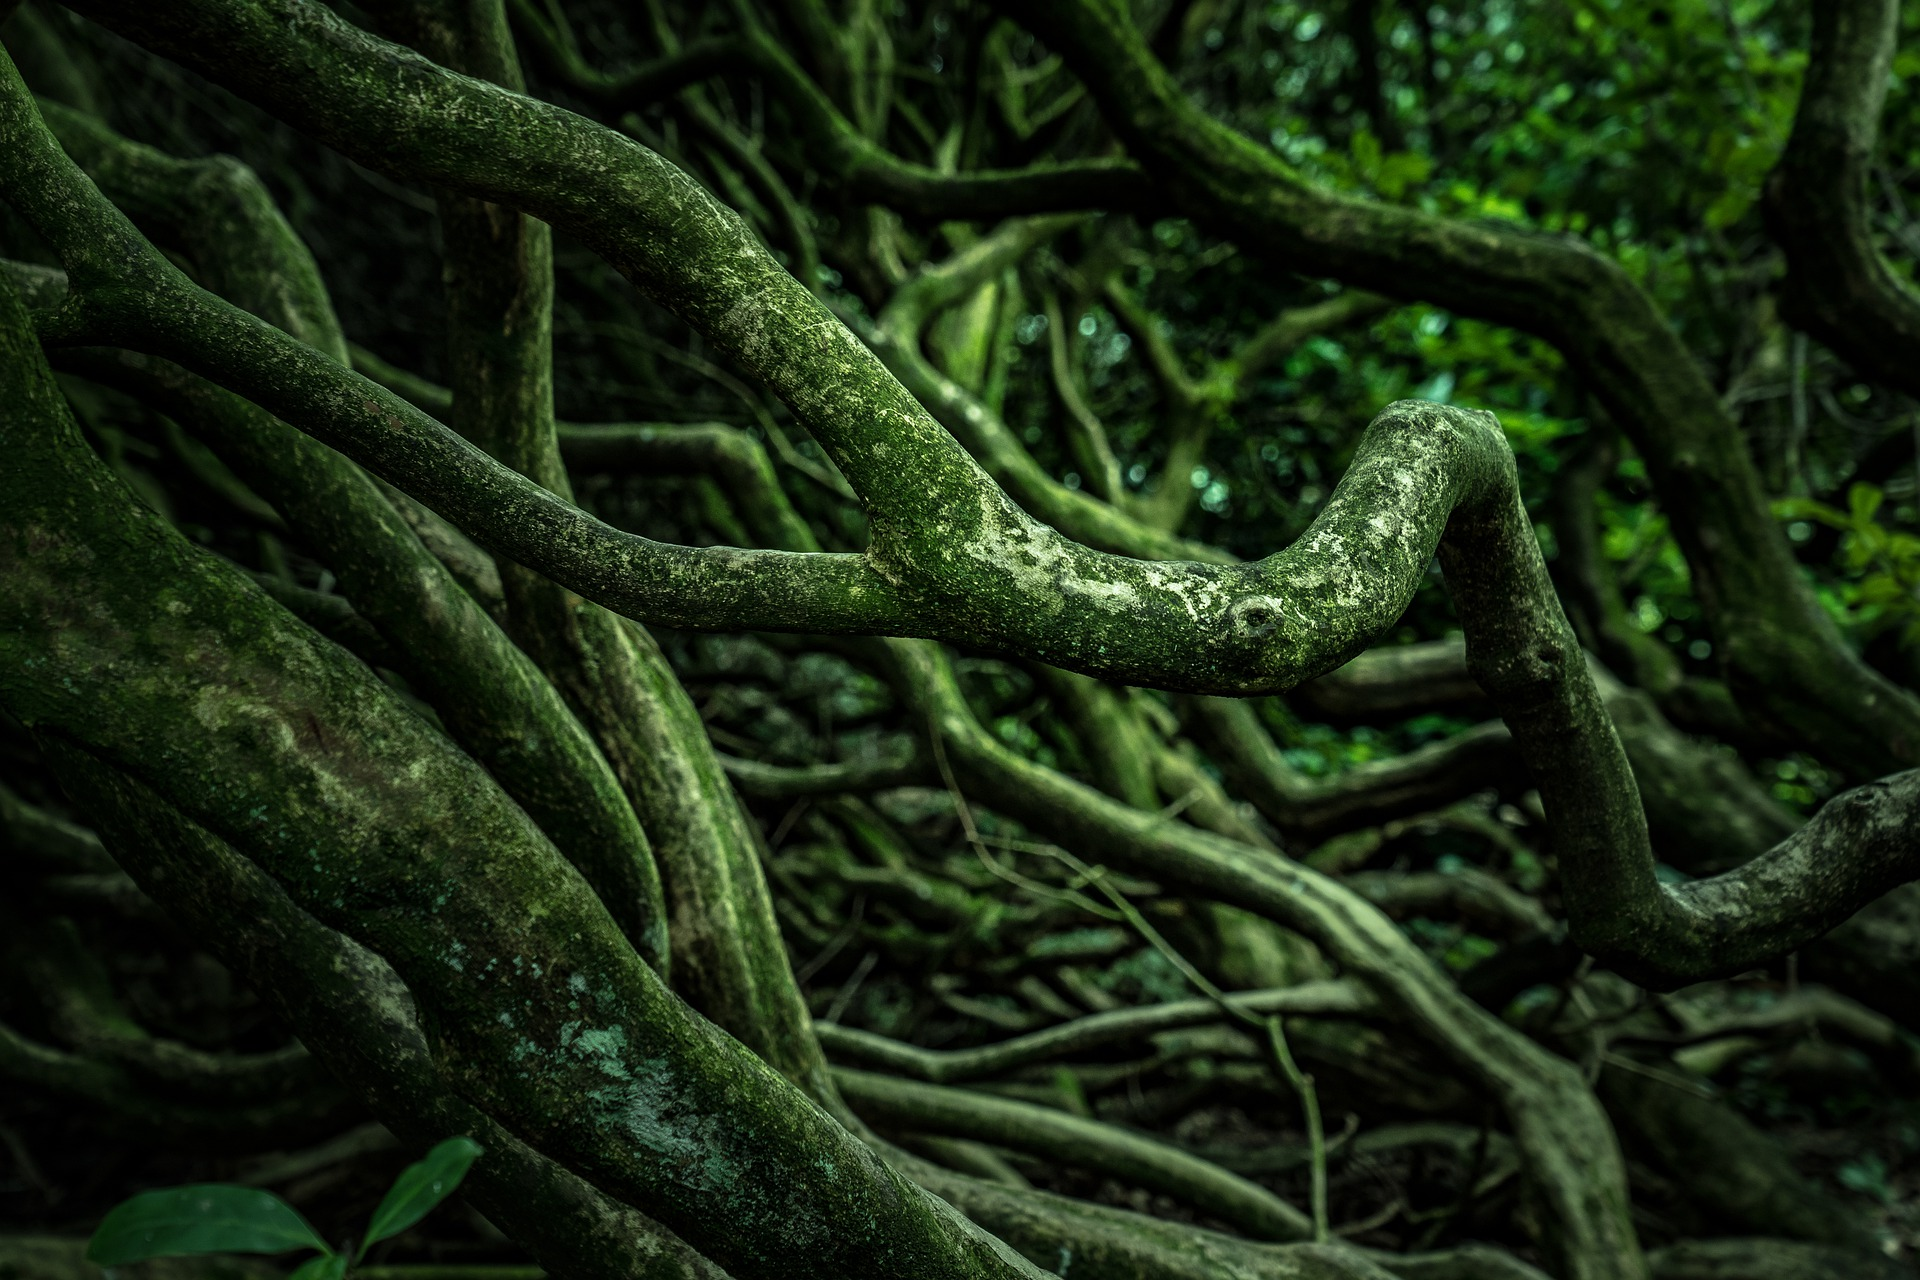 Dark green tree roots tangling together